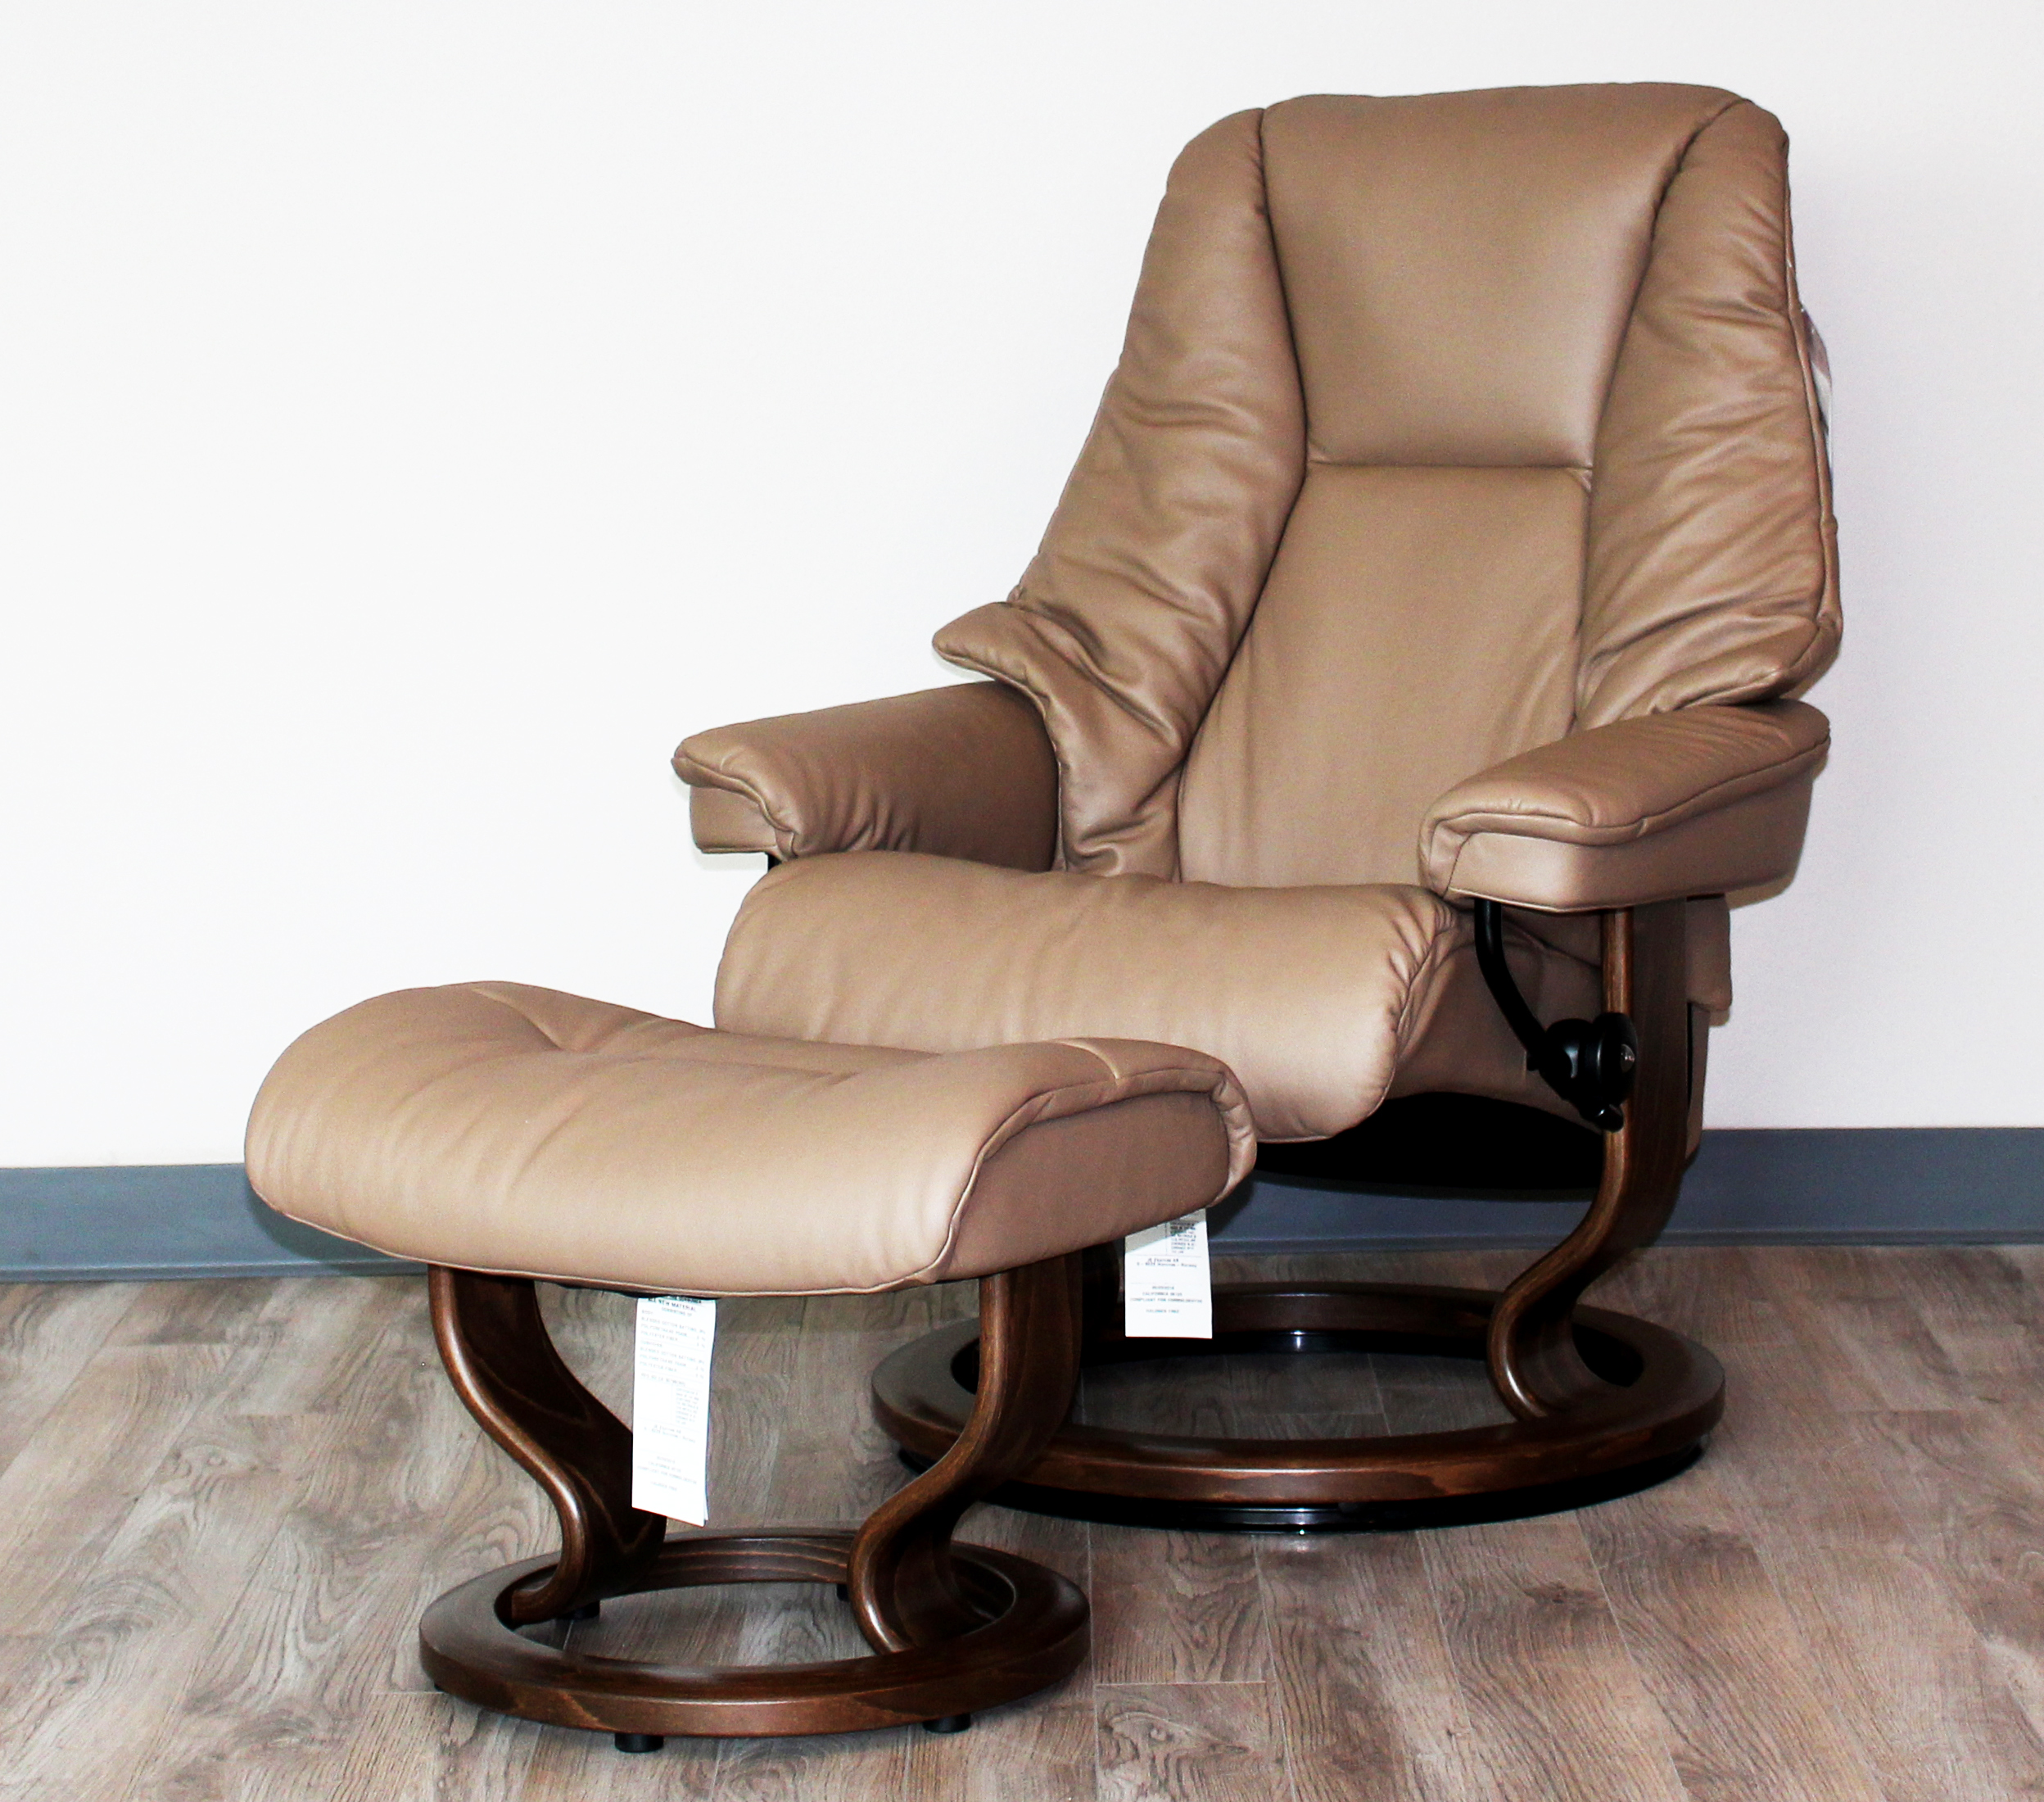 Gentil Stressless Live Medium Recliner Chair And Ottoman By Ekornes